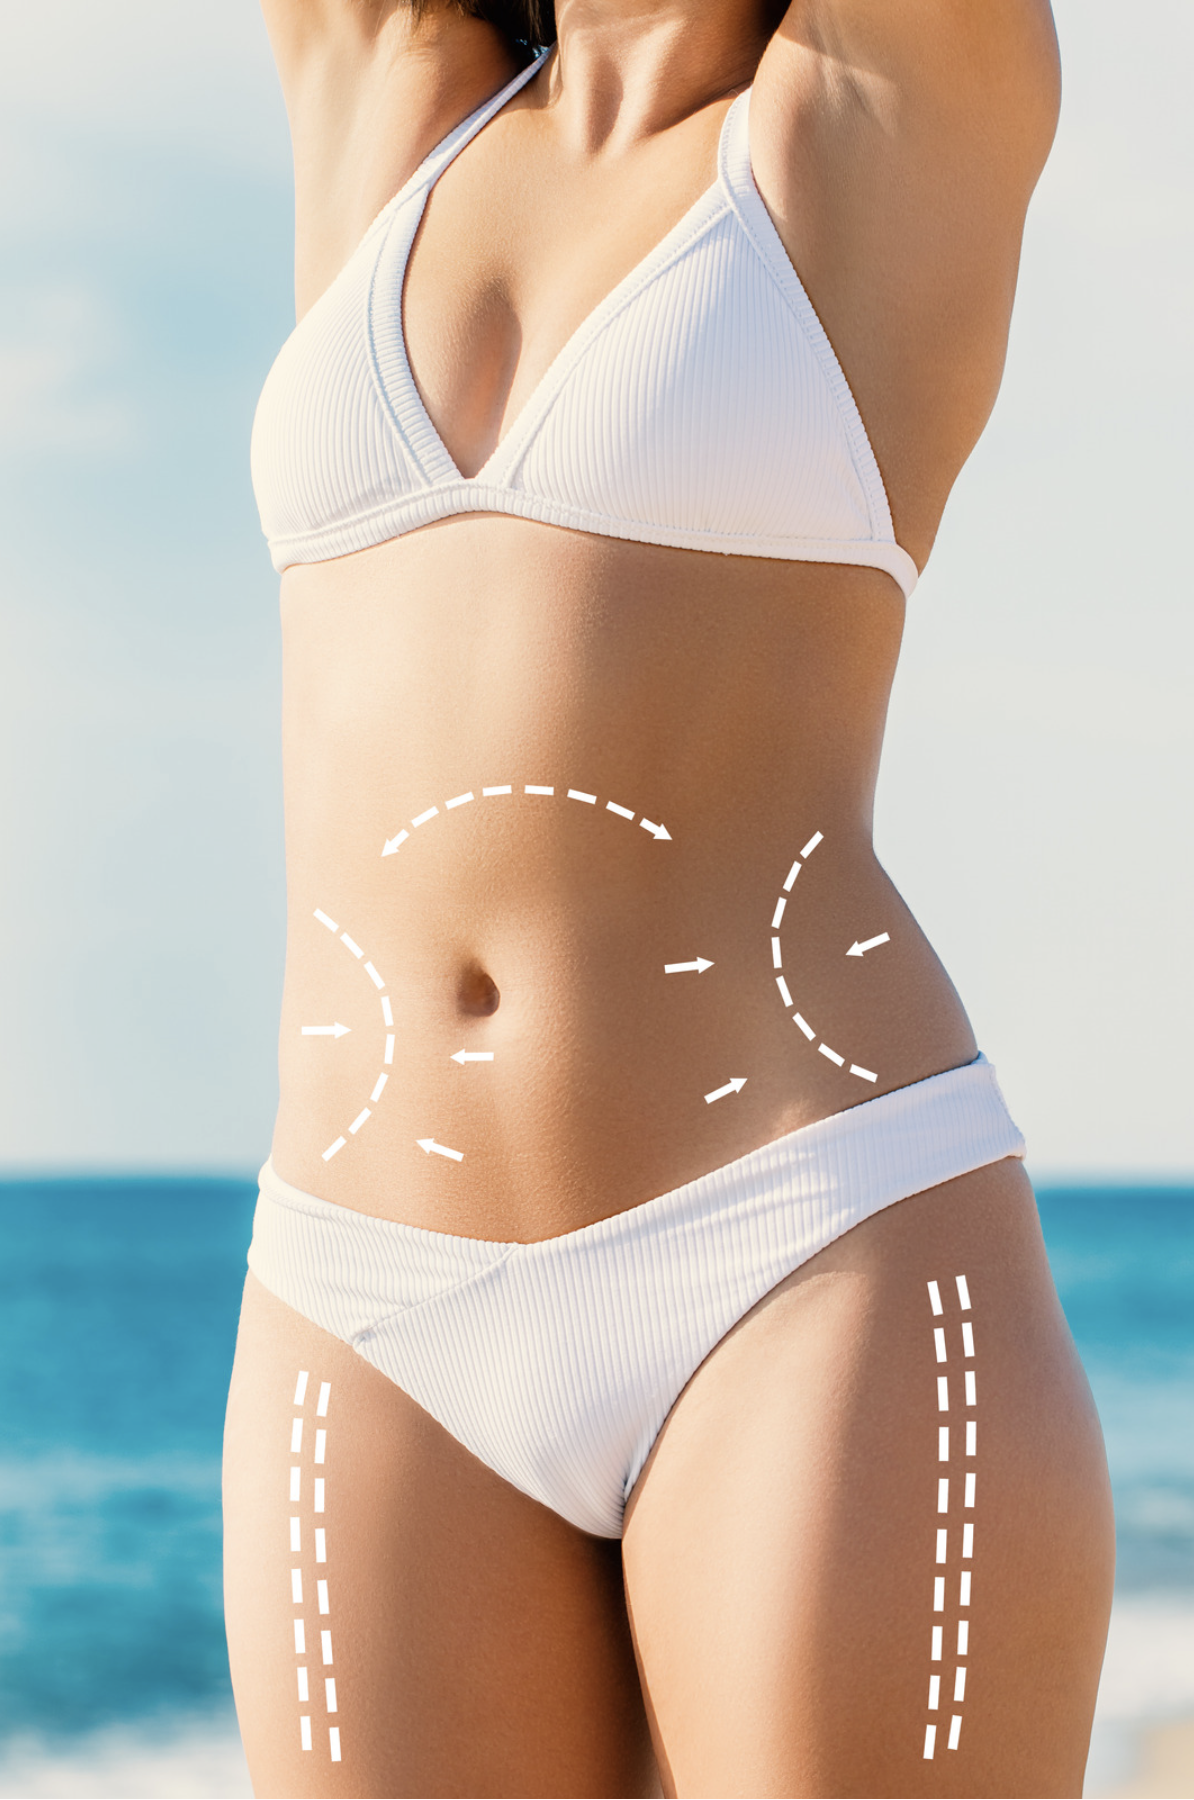 Woman in a white swimsuit with surgical lines on her abdomen